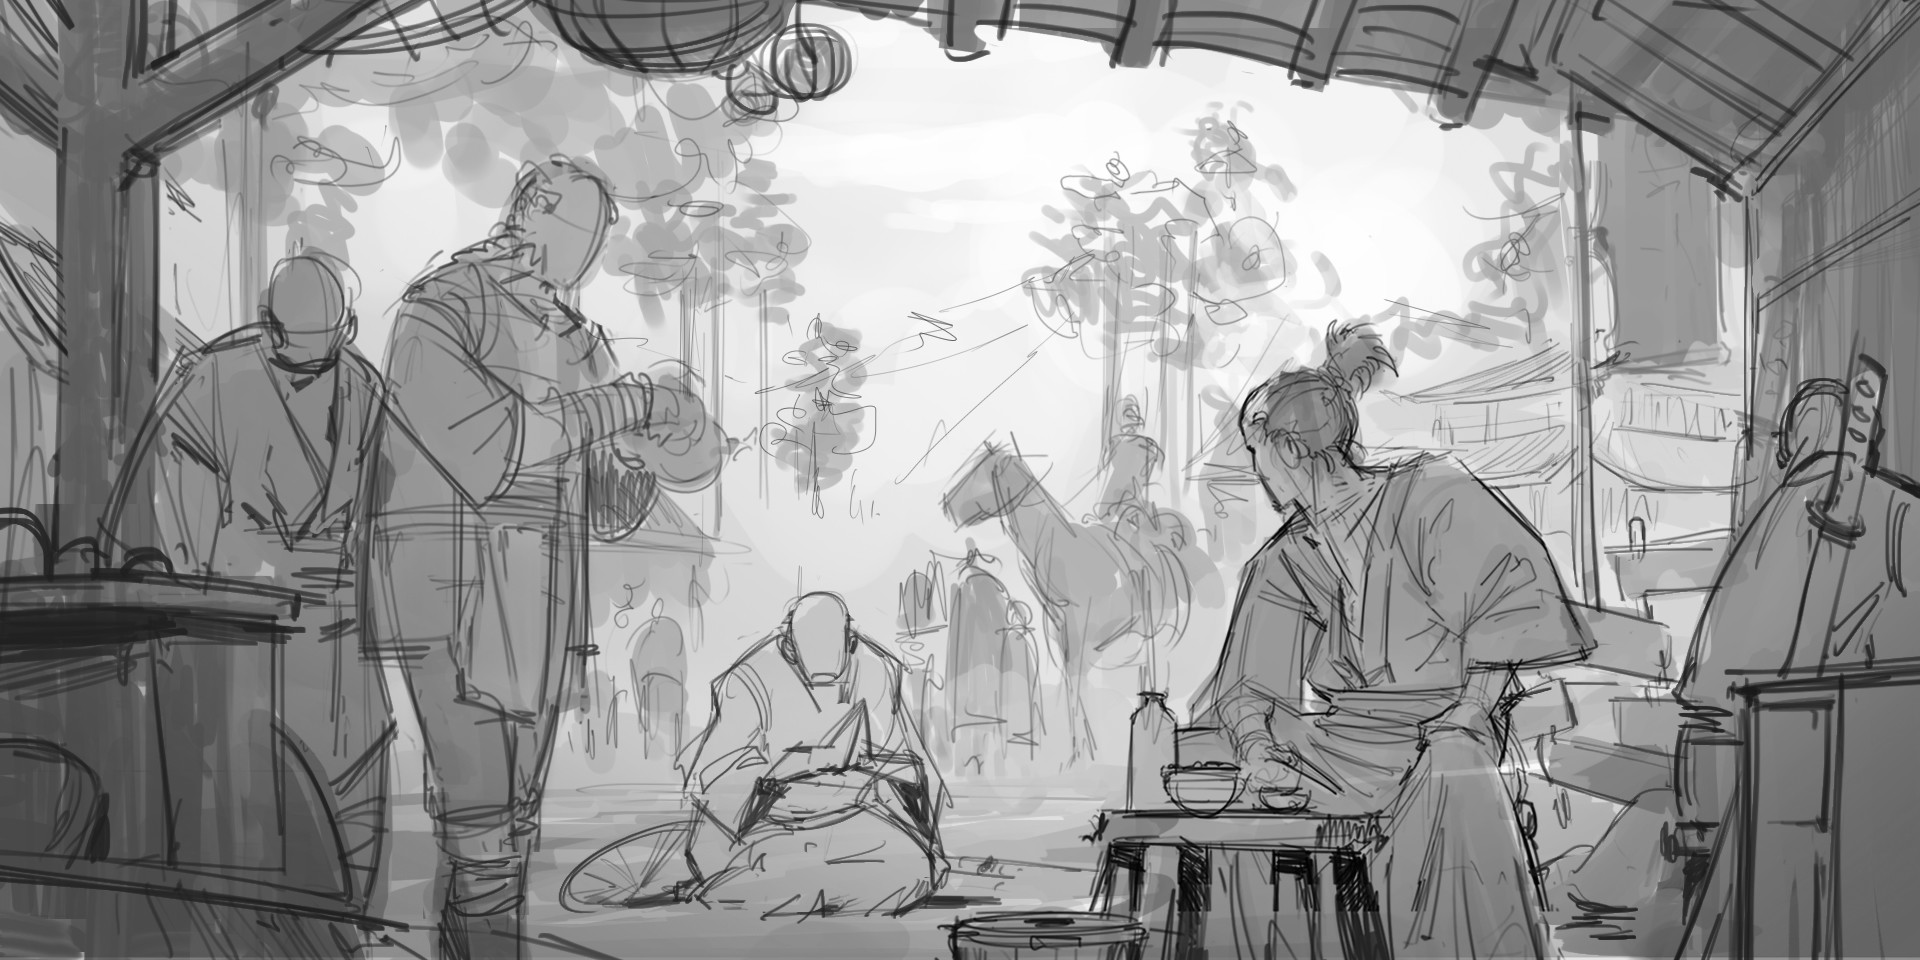 Klaus pillon theshogunate keyframes sketch 001